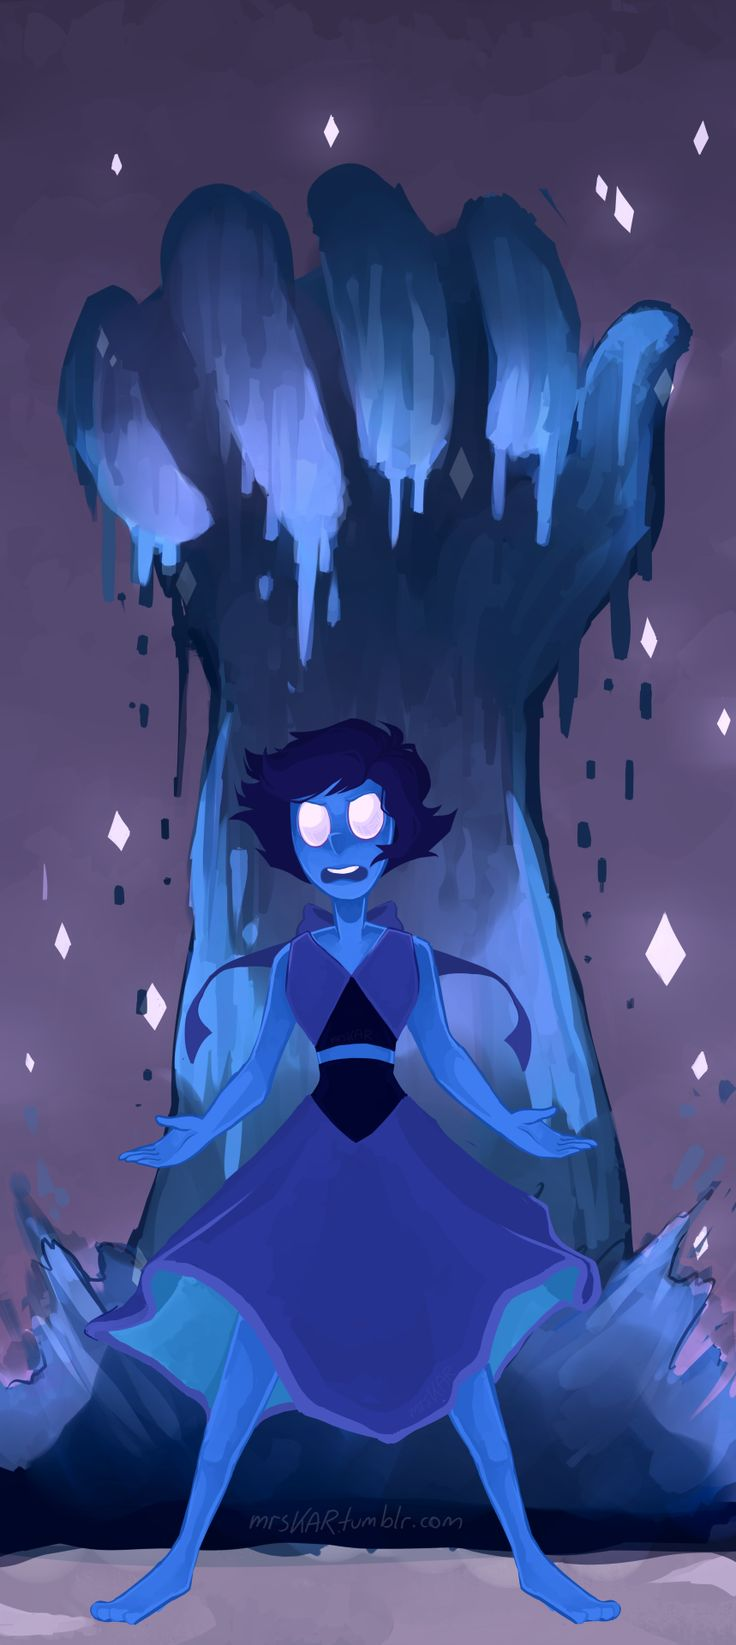 "mrskar:""I'm Lapis Lazuli, and you can't keep me trapped here anymore!""ayy lmao I did a new steven universe thing! B'^)"